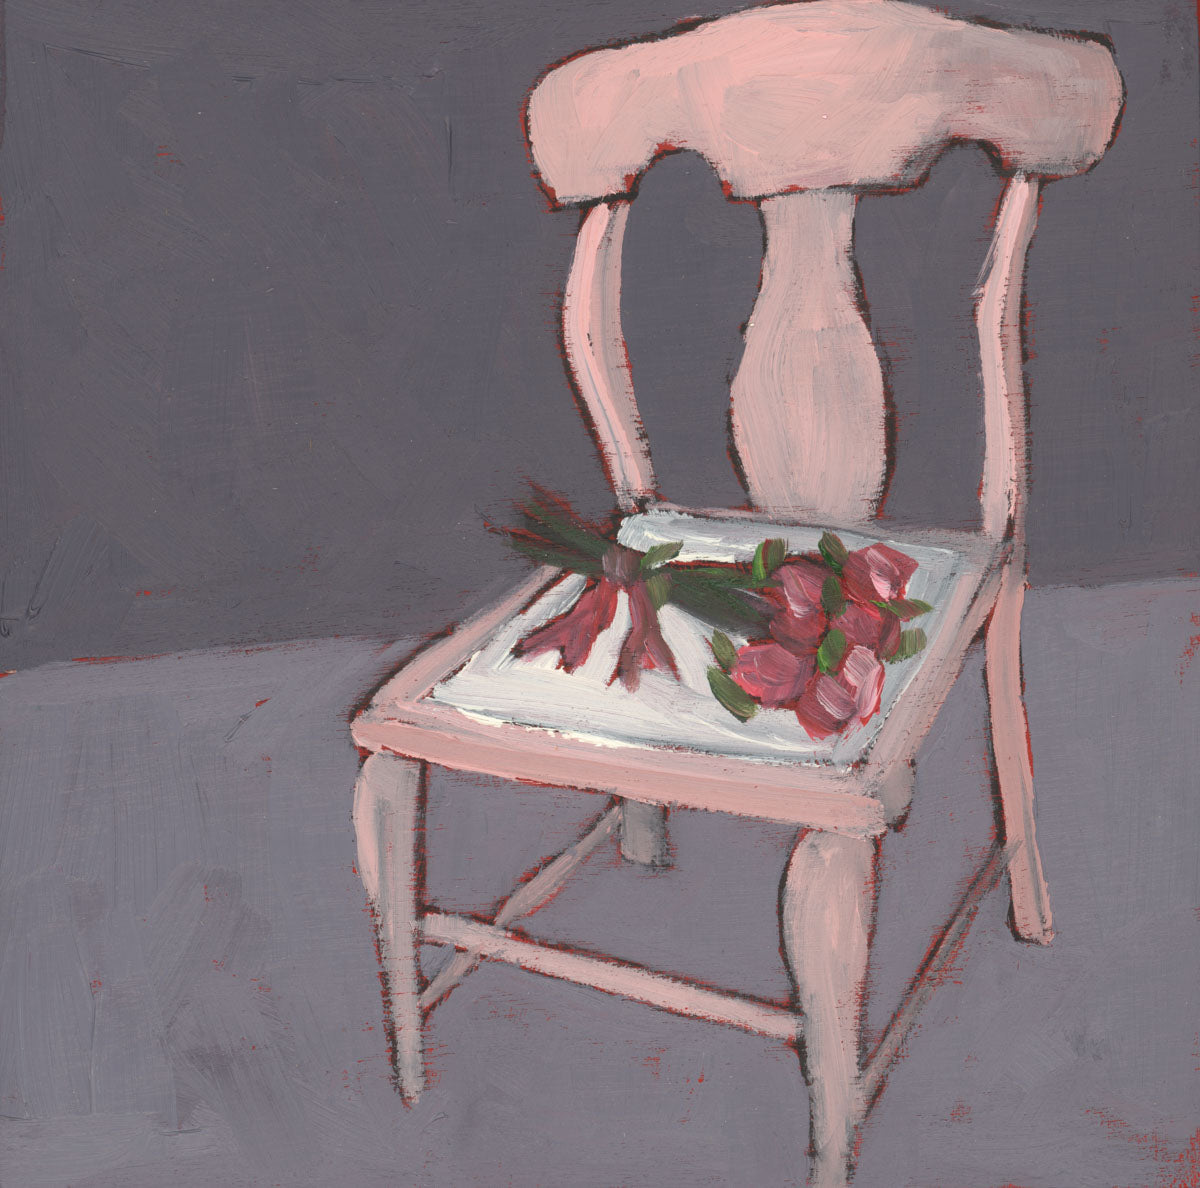 1380: Pink Chair, Pink Roses